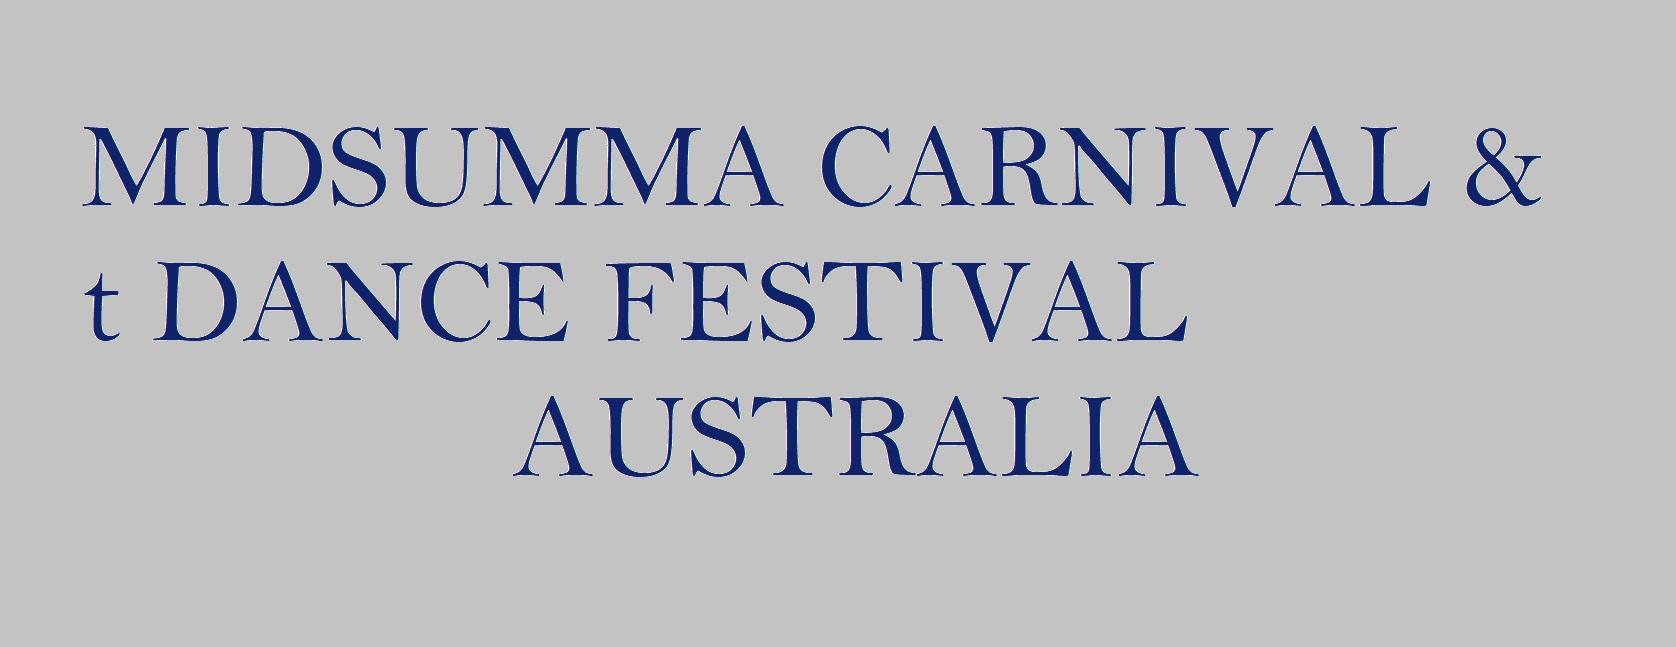 Midsumma Carnival and T Dance Festival, Australia